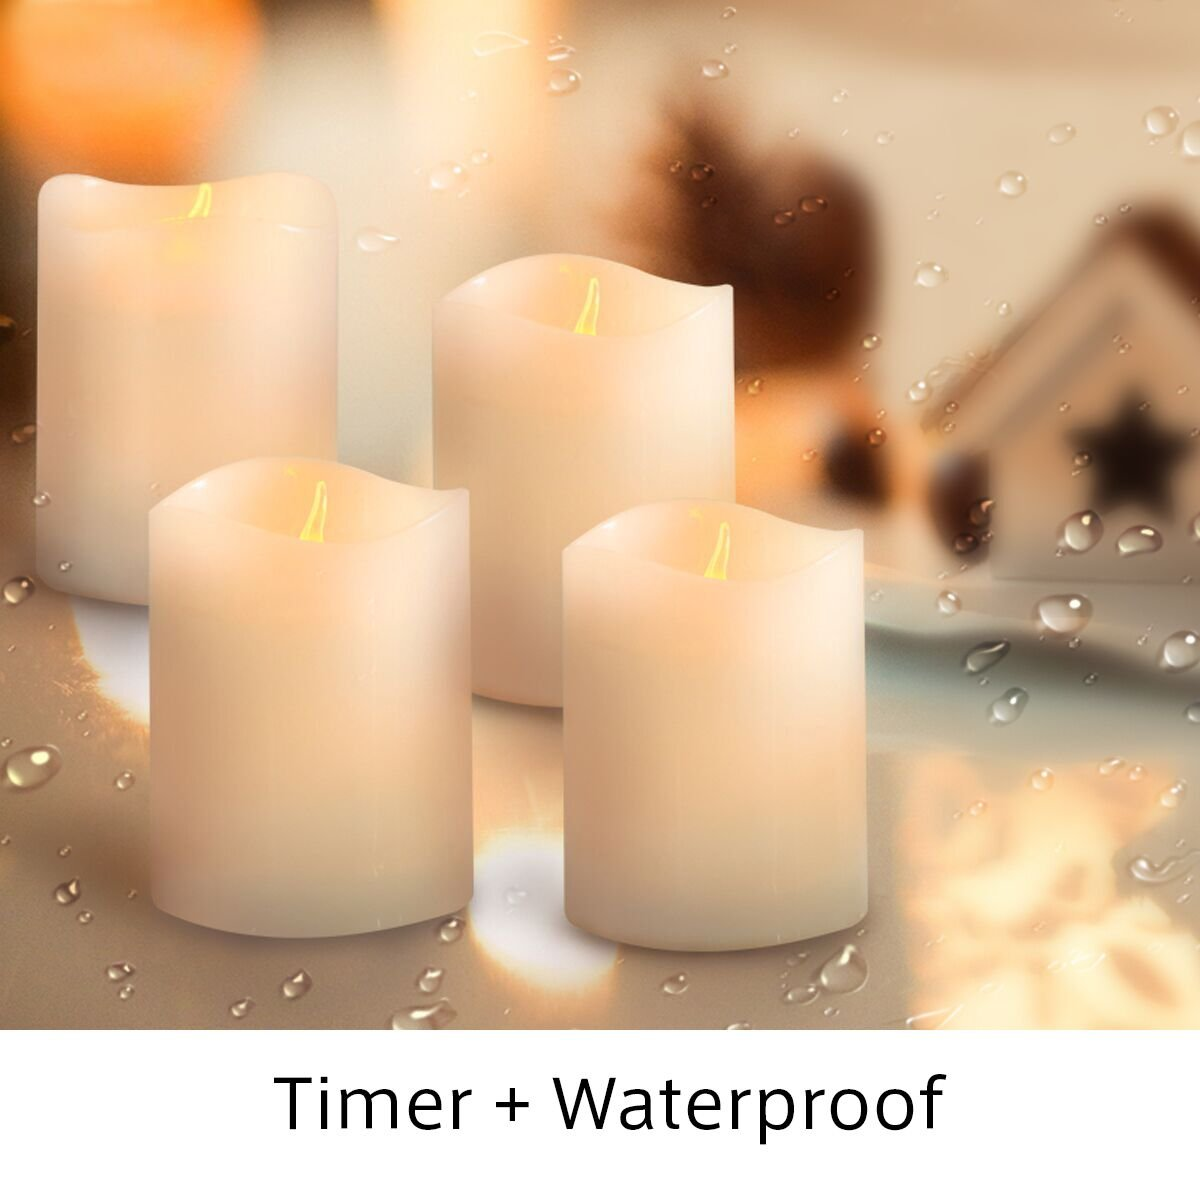 LED Tealight Candles with Timer - Votive Candles Battery Operated - Waterproof - Amber Light 4 Pack